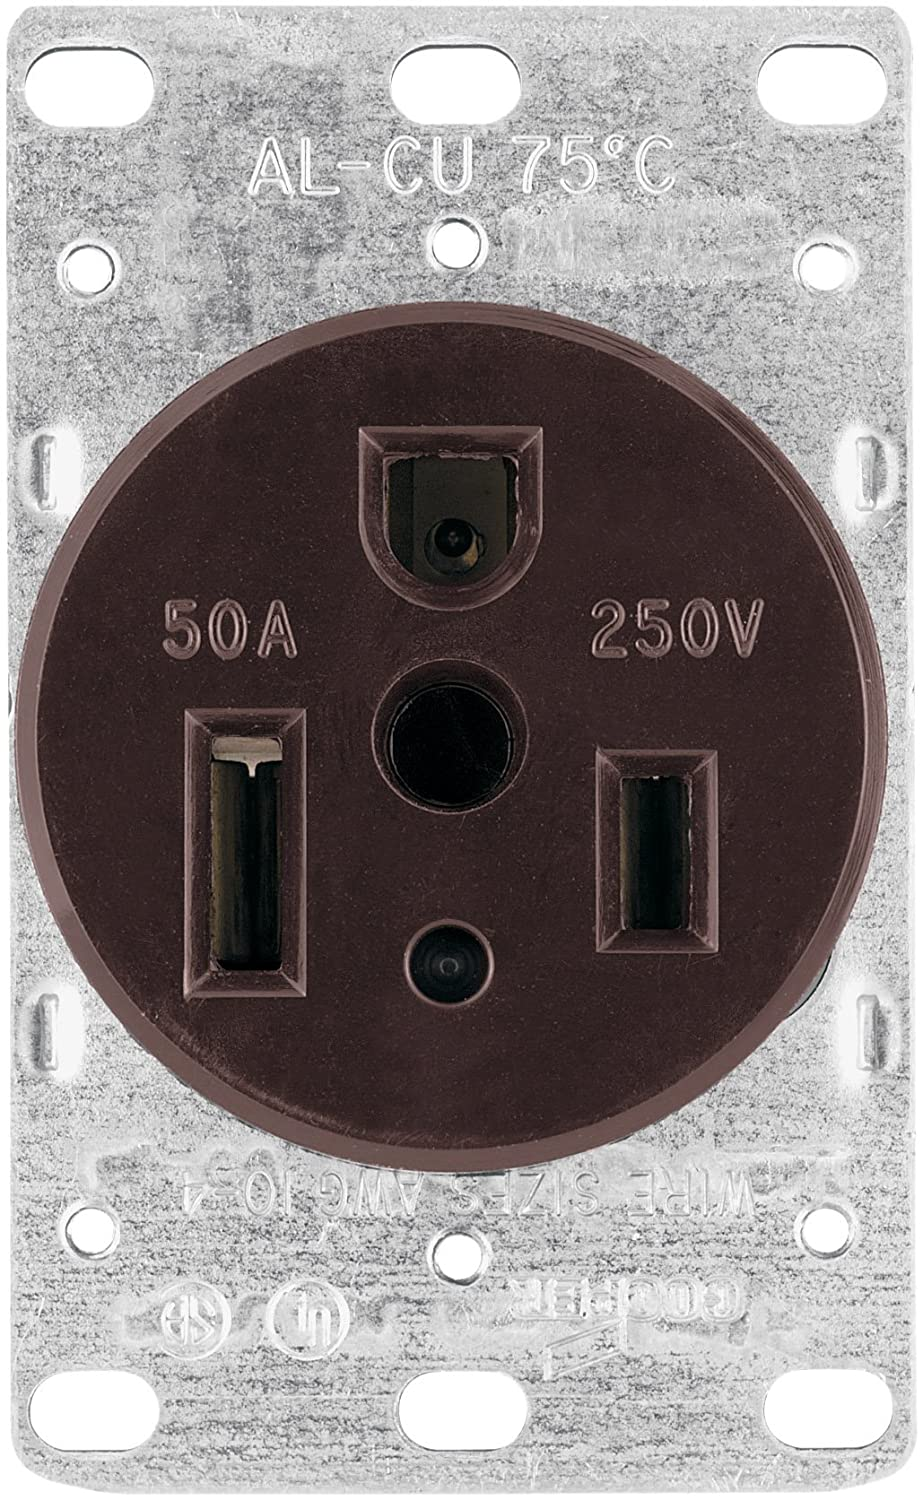 Eaton 1254 Box 50 Amp 2 Pole 3 Wire 250 Volt Heavy Duty Grade Flush Wiring A Outlet Mount Power Receptacle Brown Electric Plugs